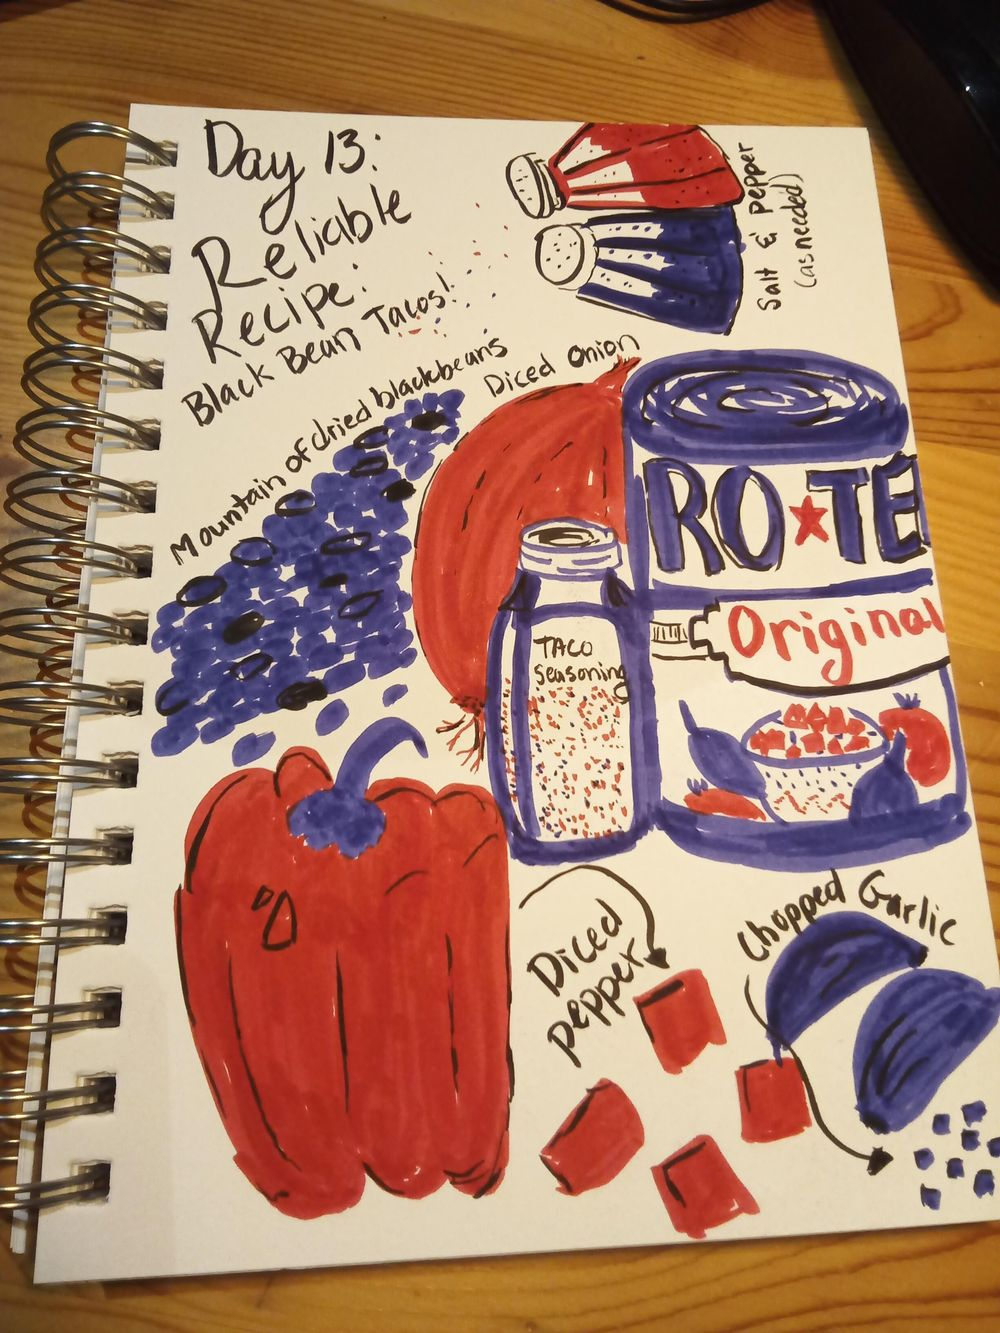 Daily Illustrated Journaling - image 13 - student project